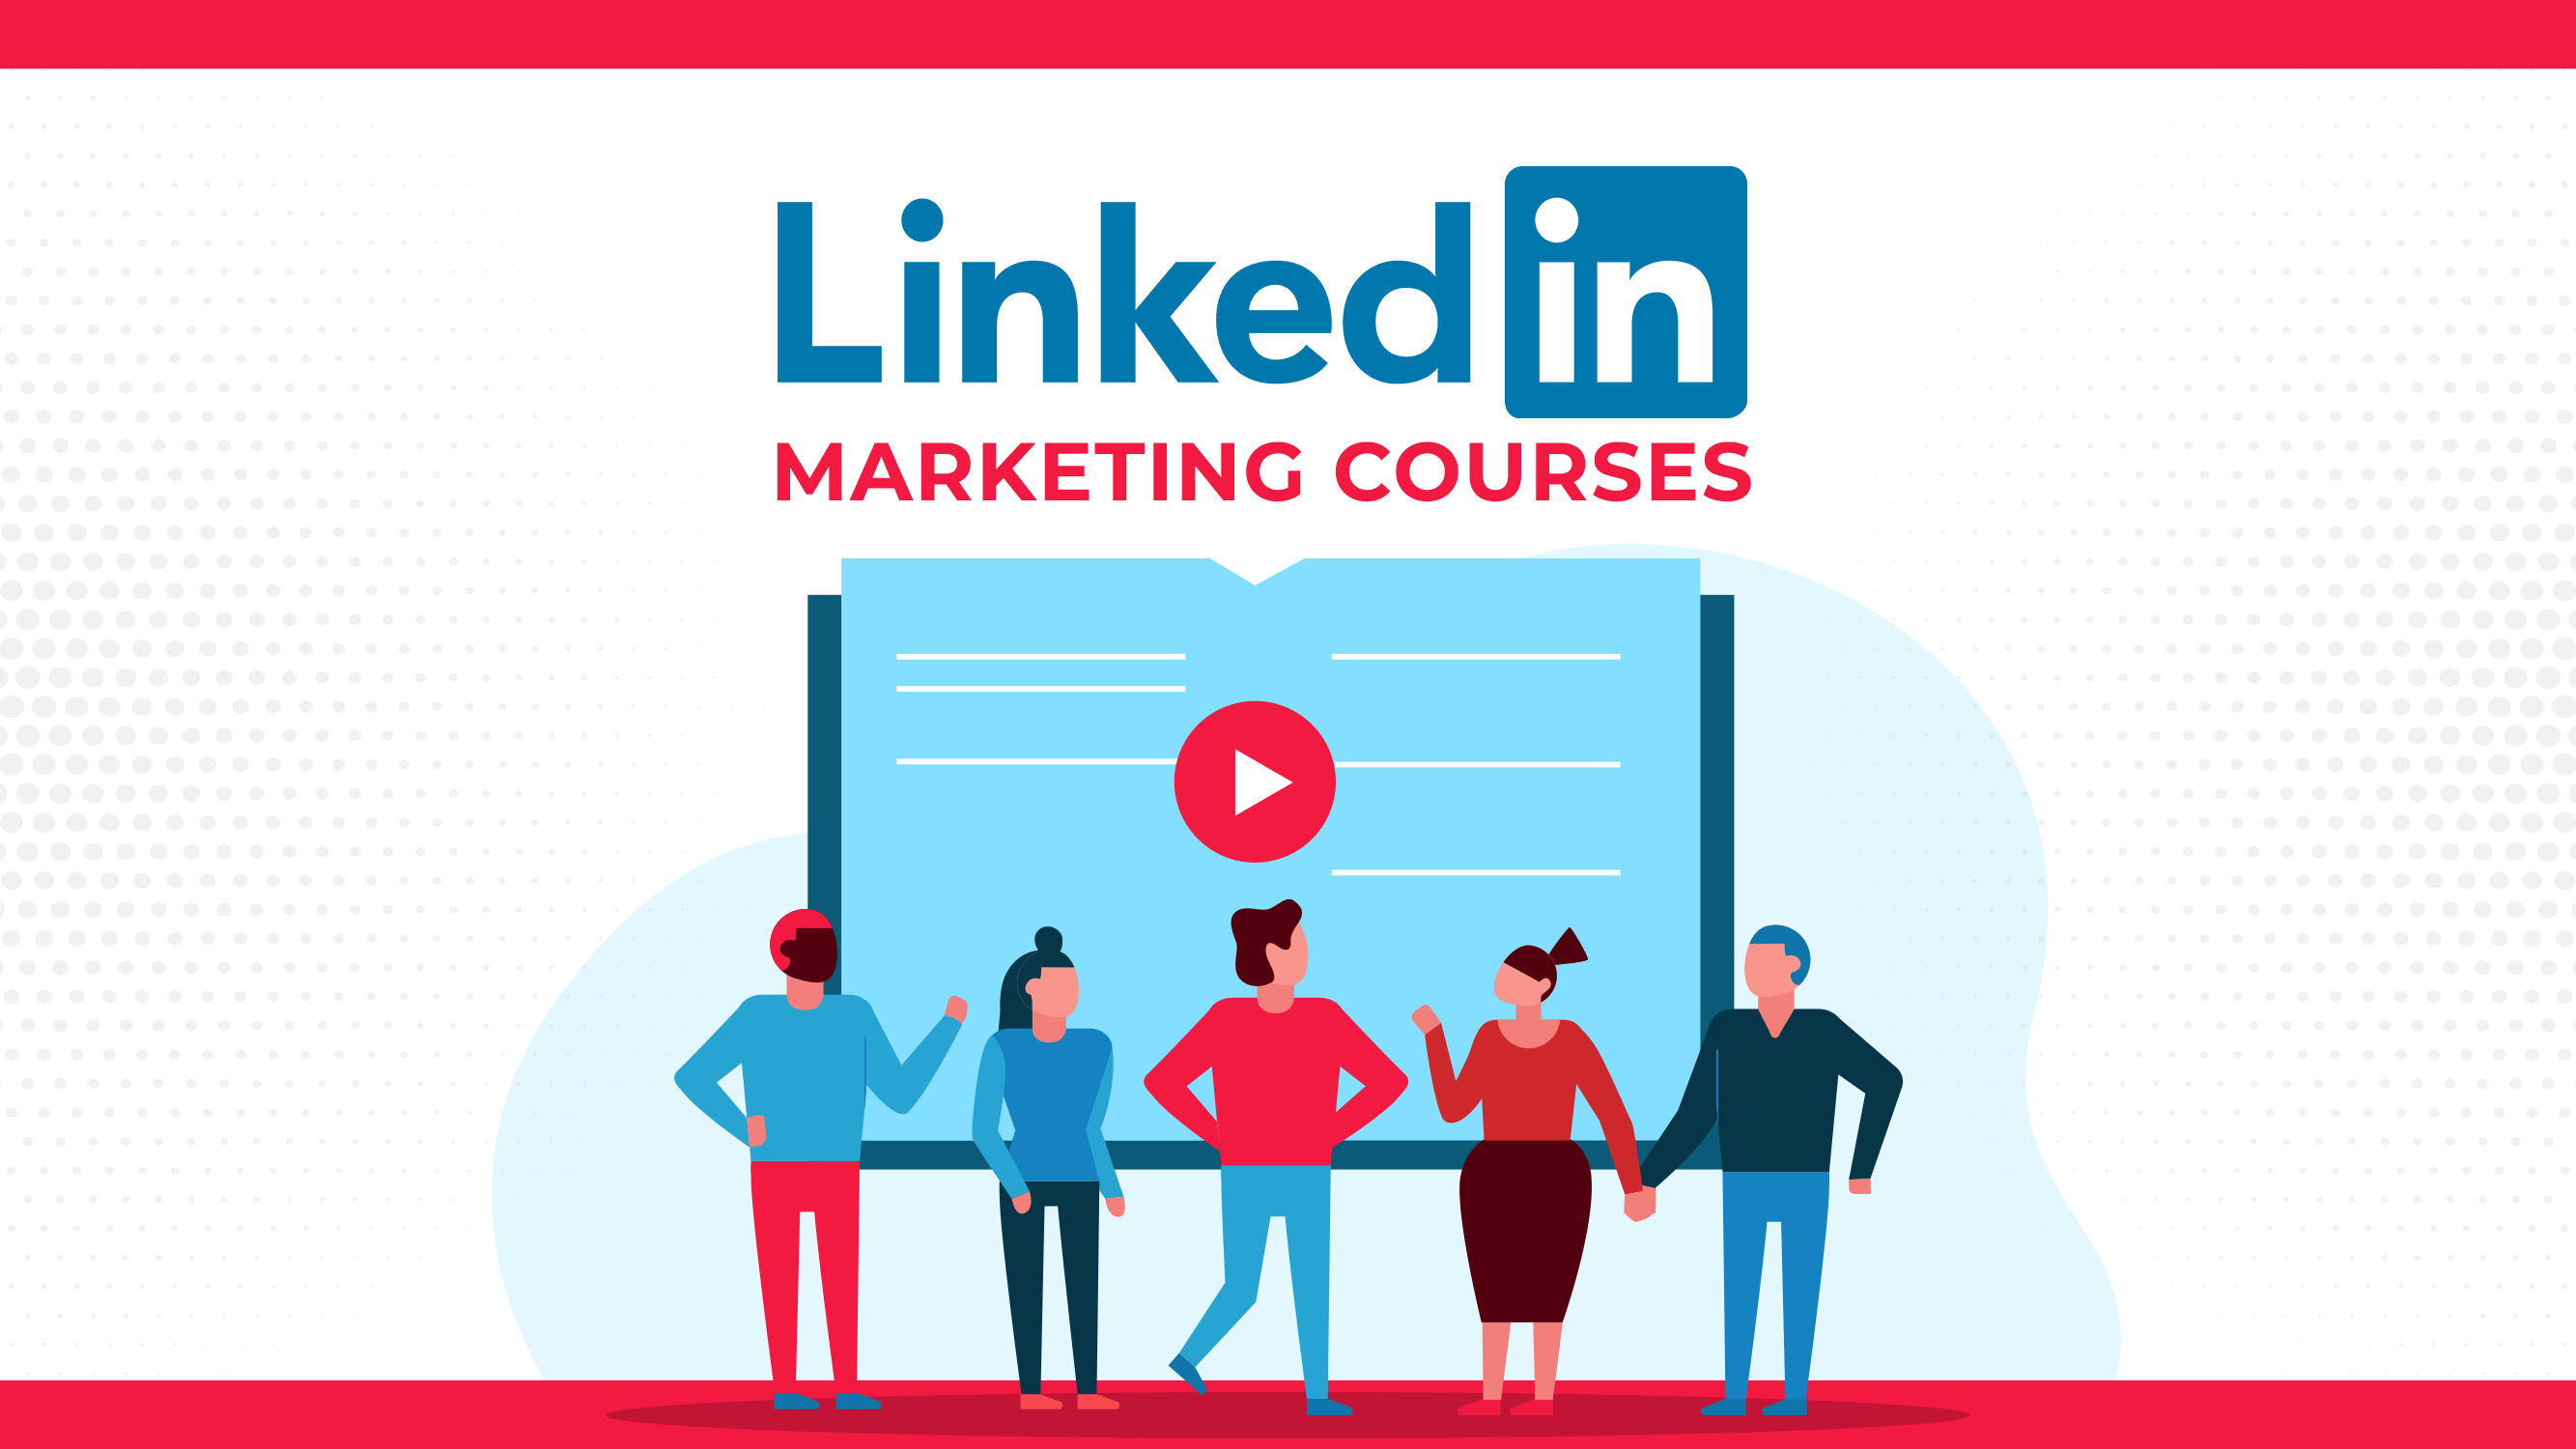 7 Awesome LinkedIn Marketing-Kurse, die Sie ausprobieren müssen